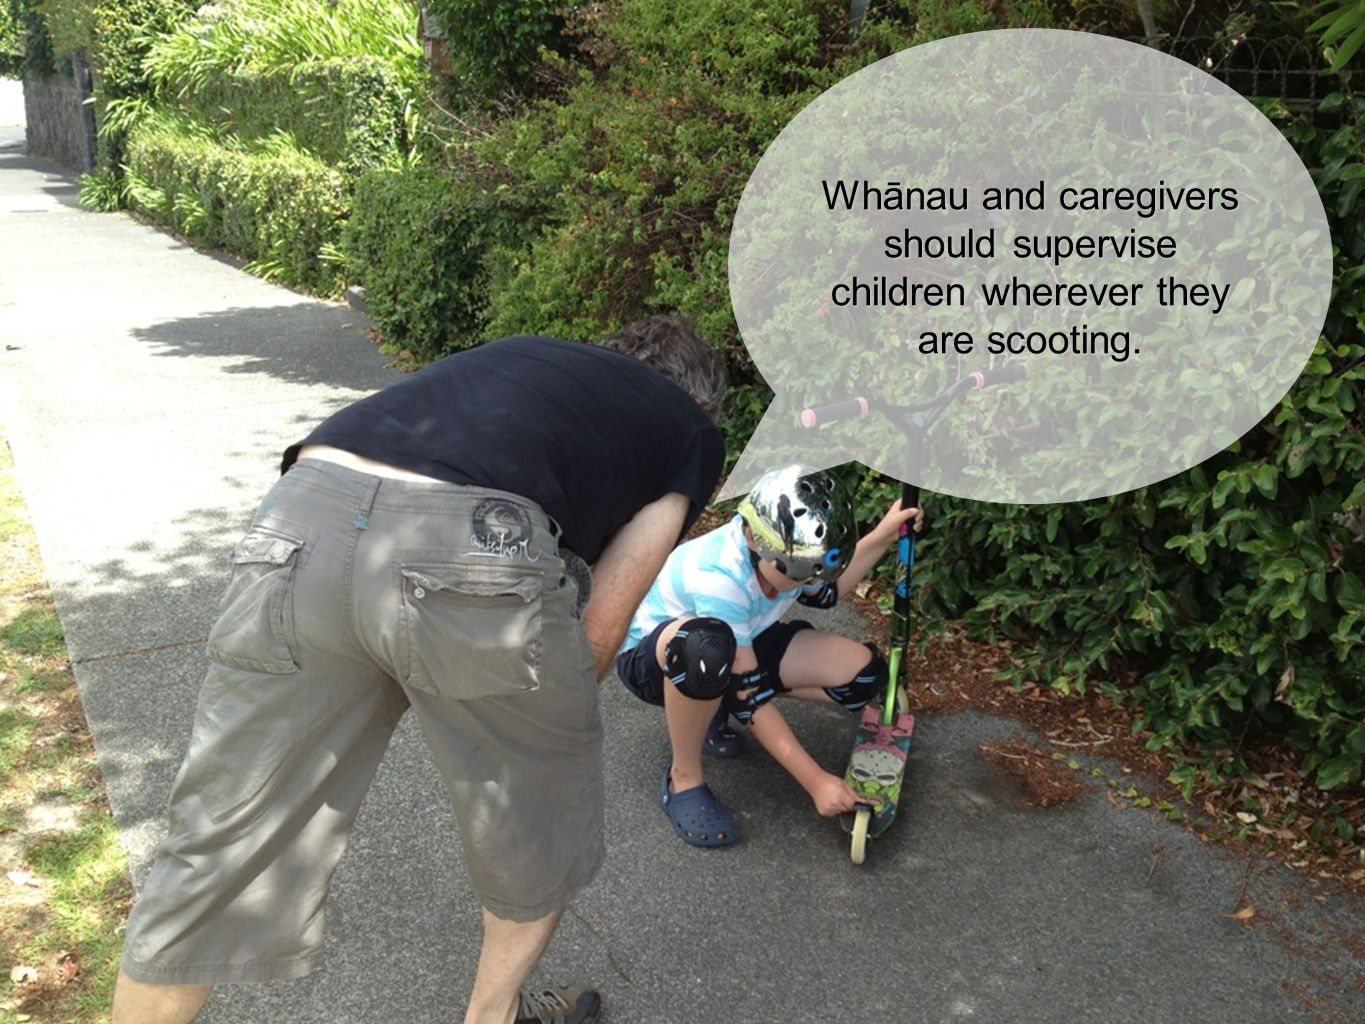 Whānau and caregivers should supervise children wherever they are scooting.